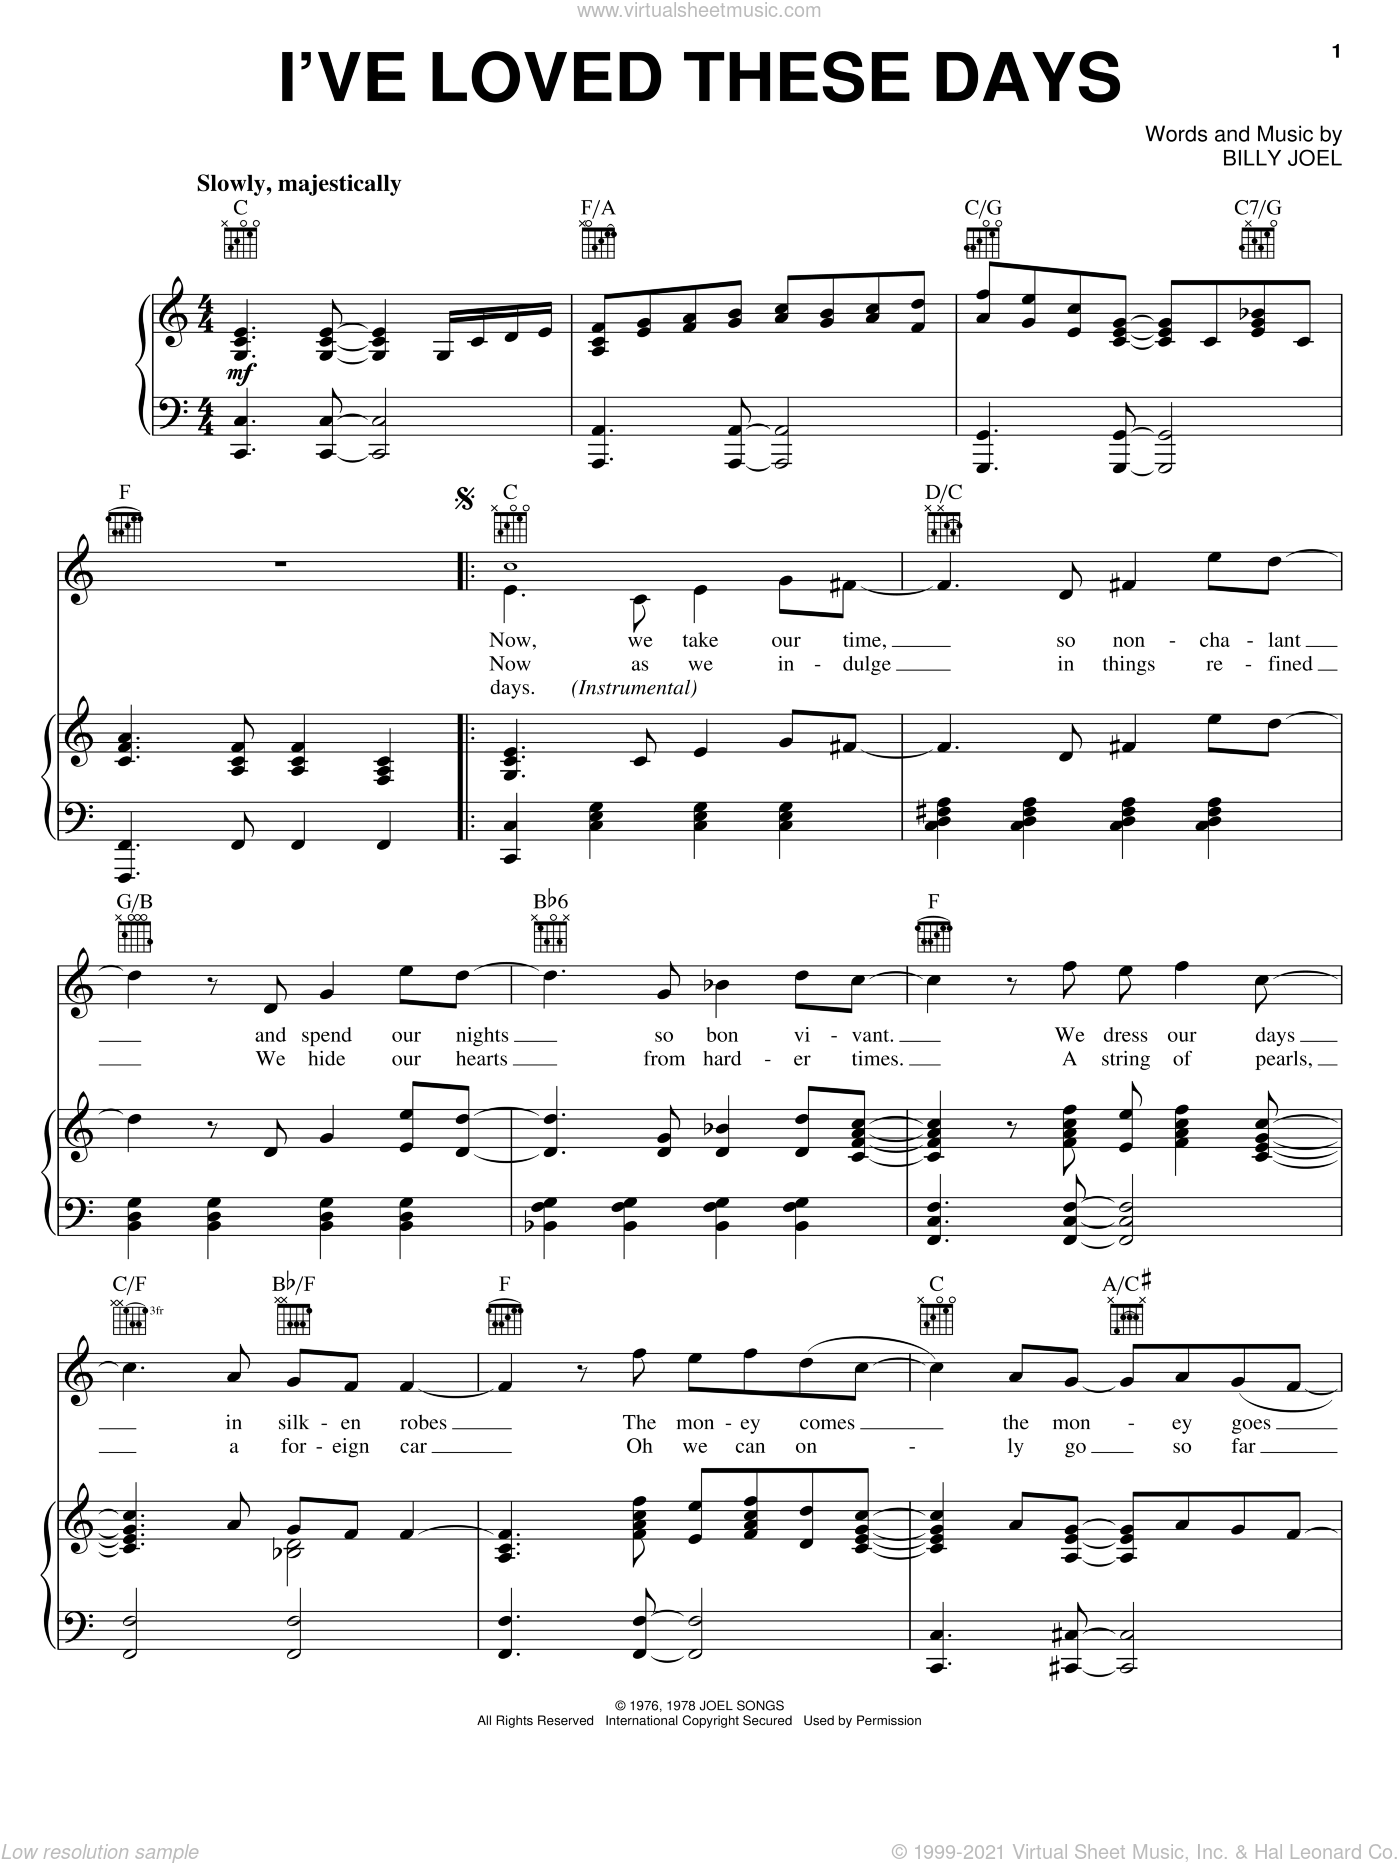 I've Loved These Days sheet music for voice, piano or guitar by Billy Joel, intermediate skill level